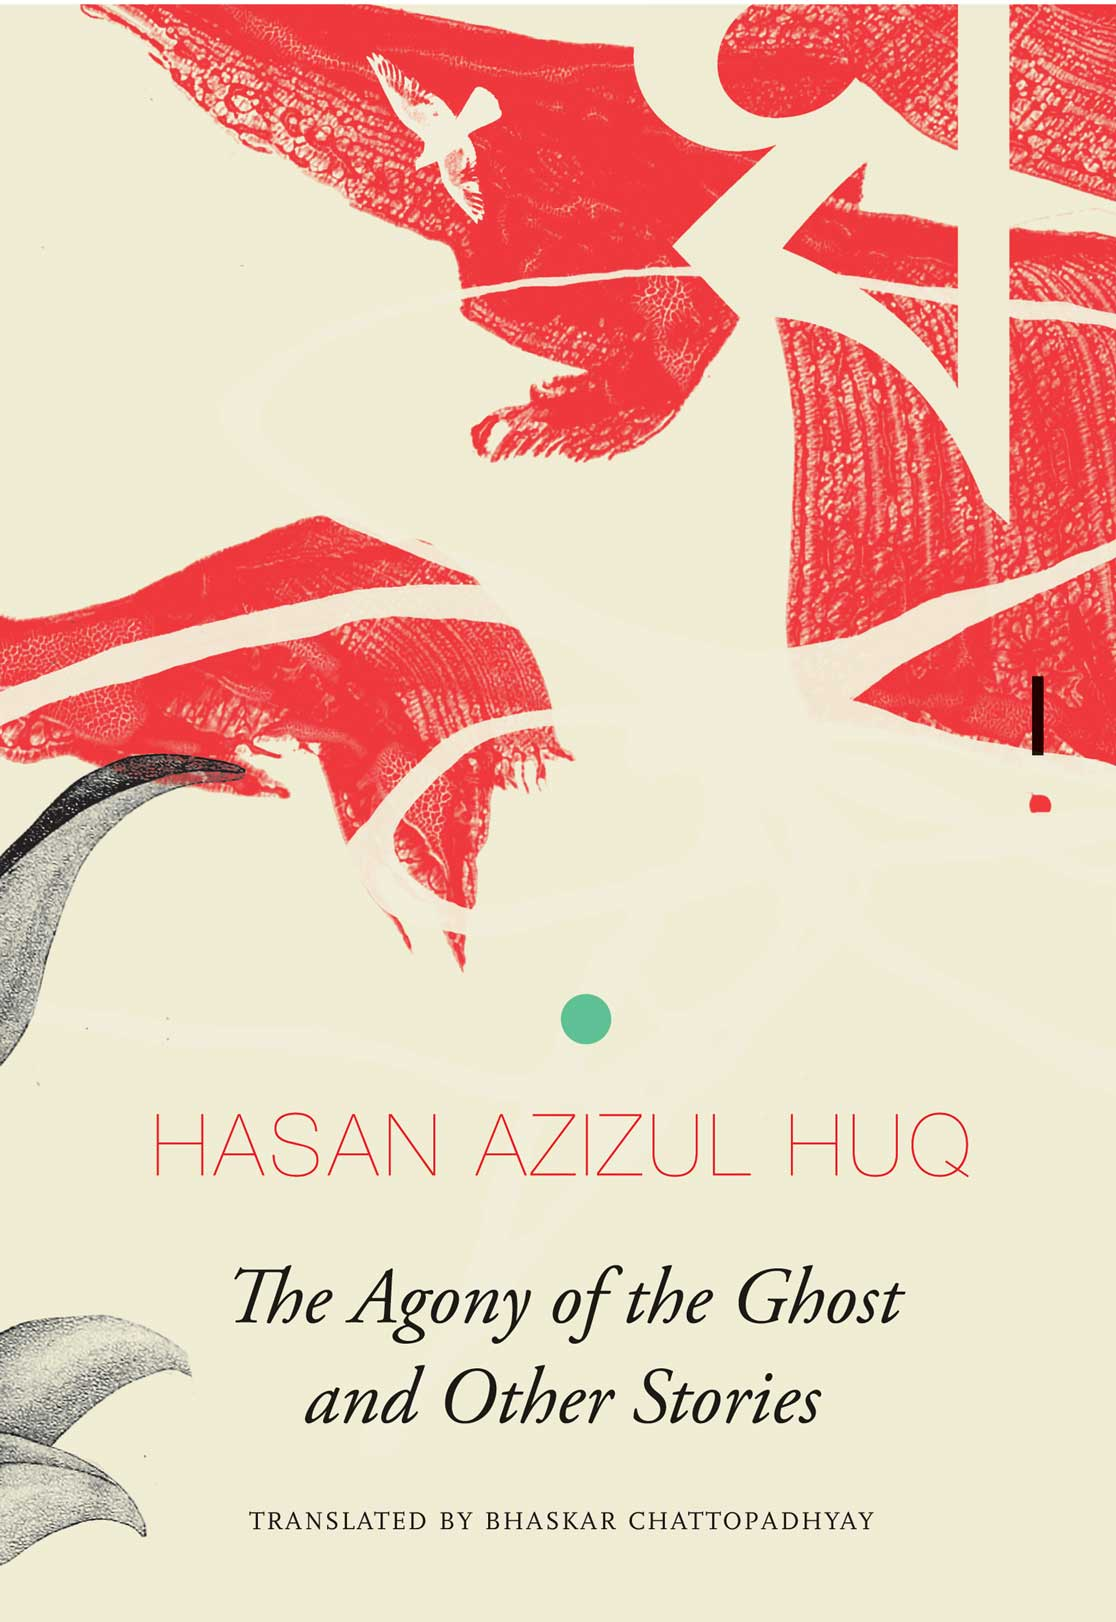 Agony of the Ghost by Hasan Azizul Huq | Seagull Books